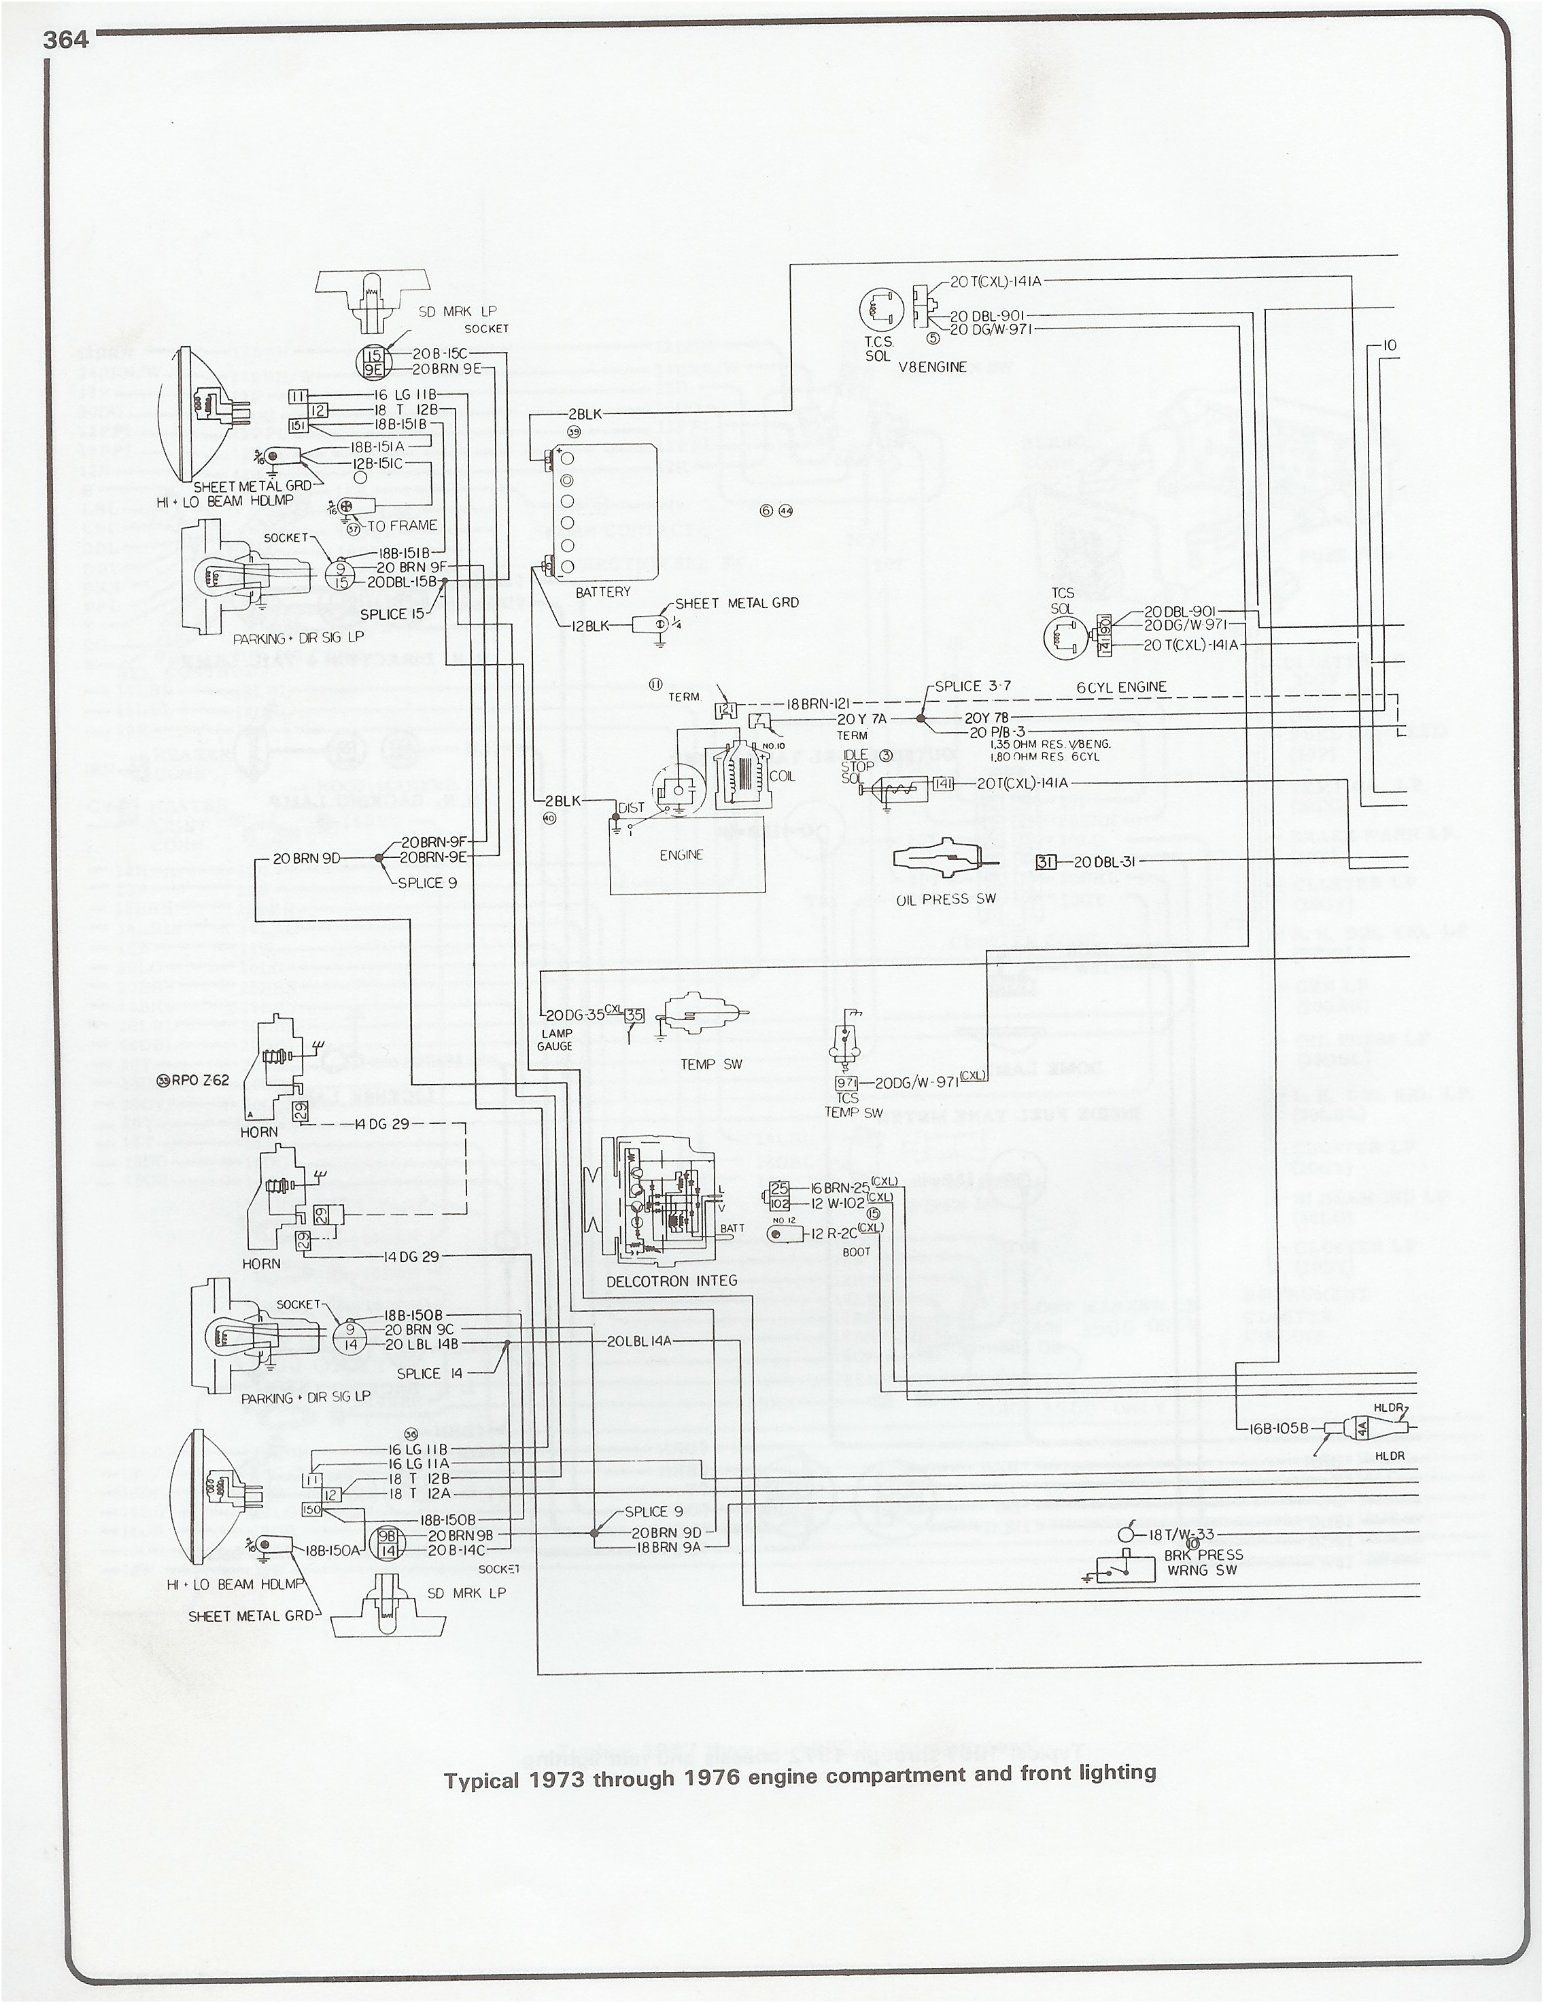 hight resolution of chevy truck rear axle diagram on chevy 350 oil pressure valve chevy silverado ac system diagram